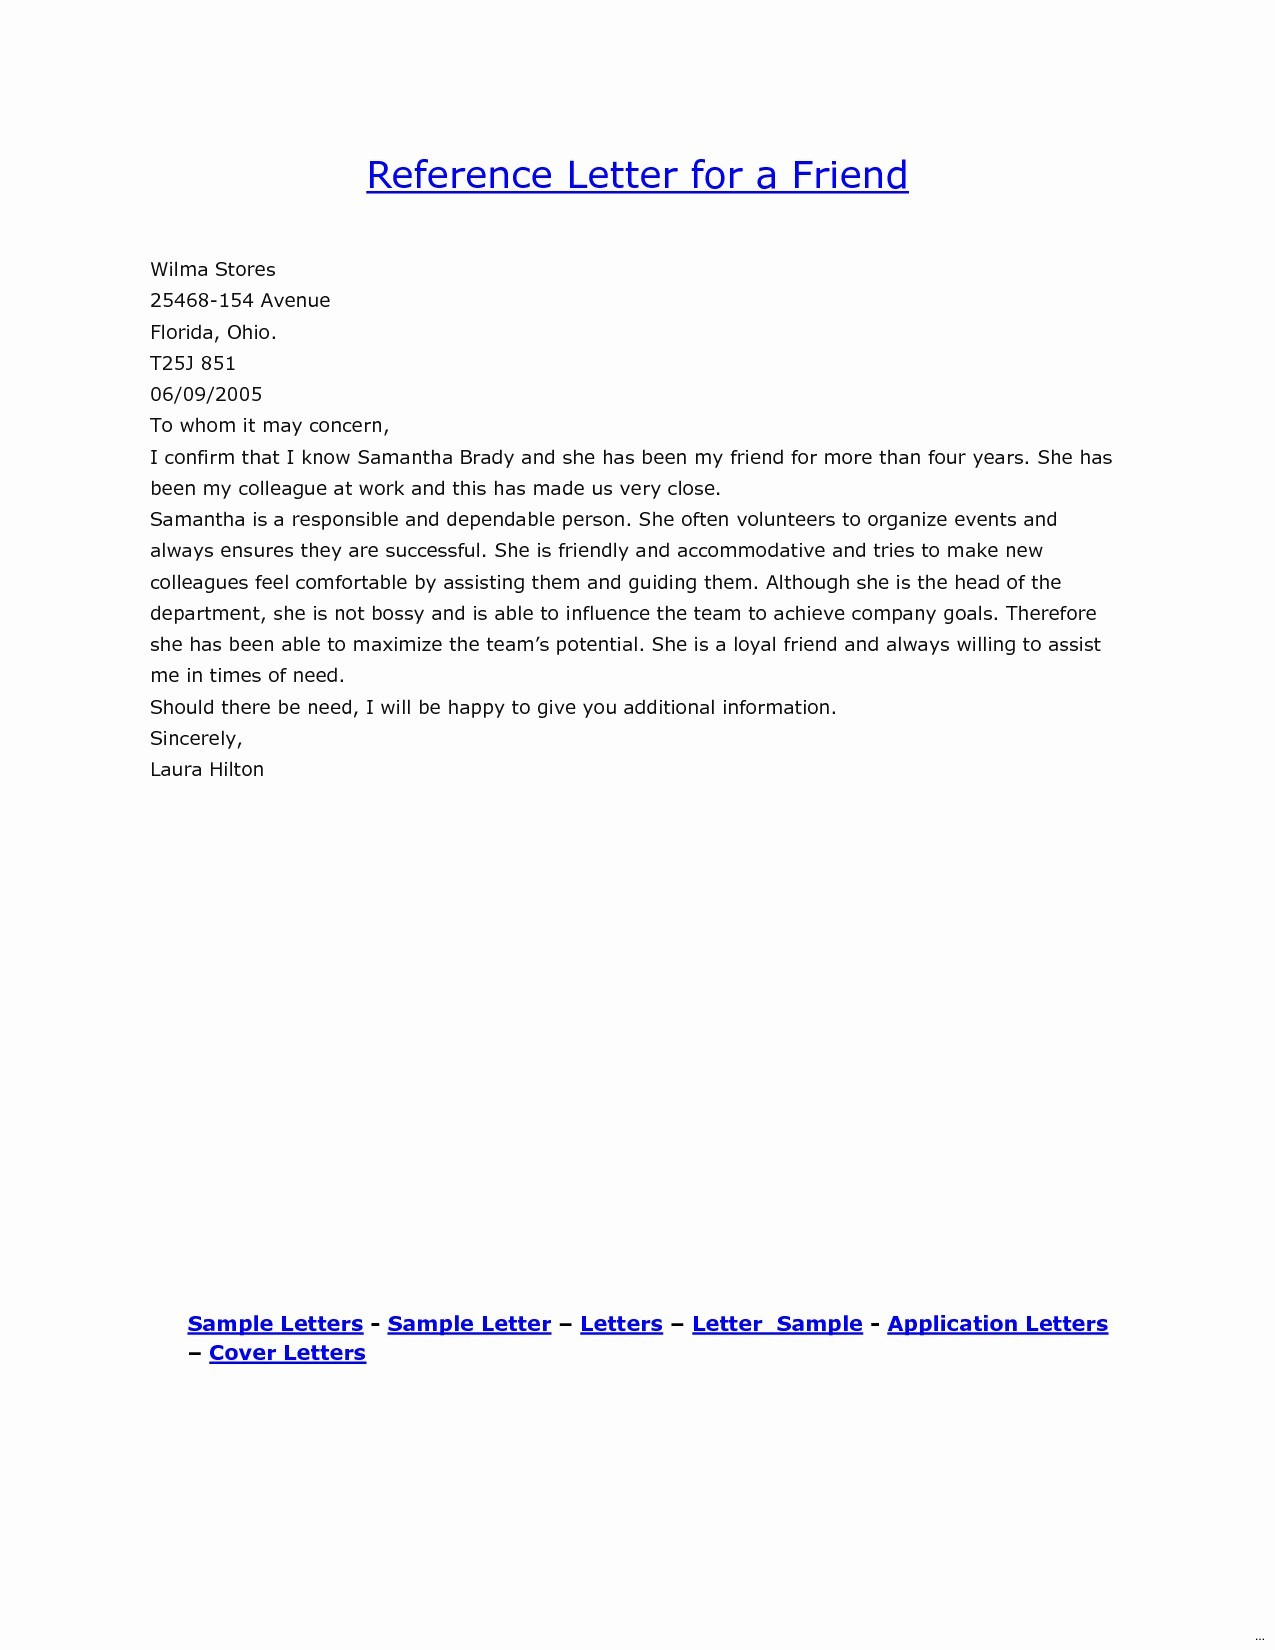 Letter Of Recommendation for A Friend Template - Re Mendation Letter for A Friend for A Job Fresh Job Reference